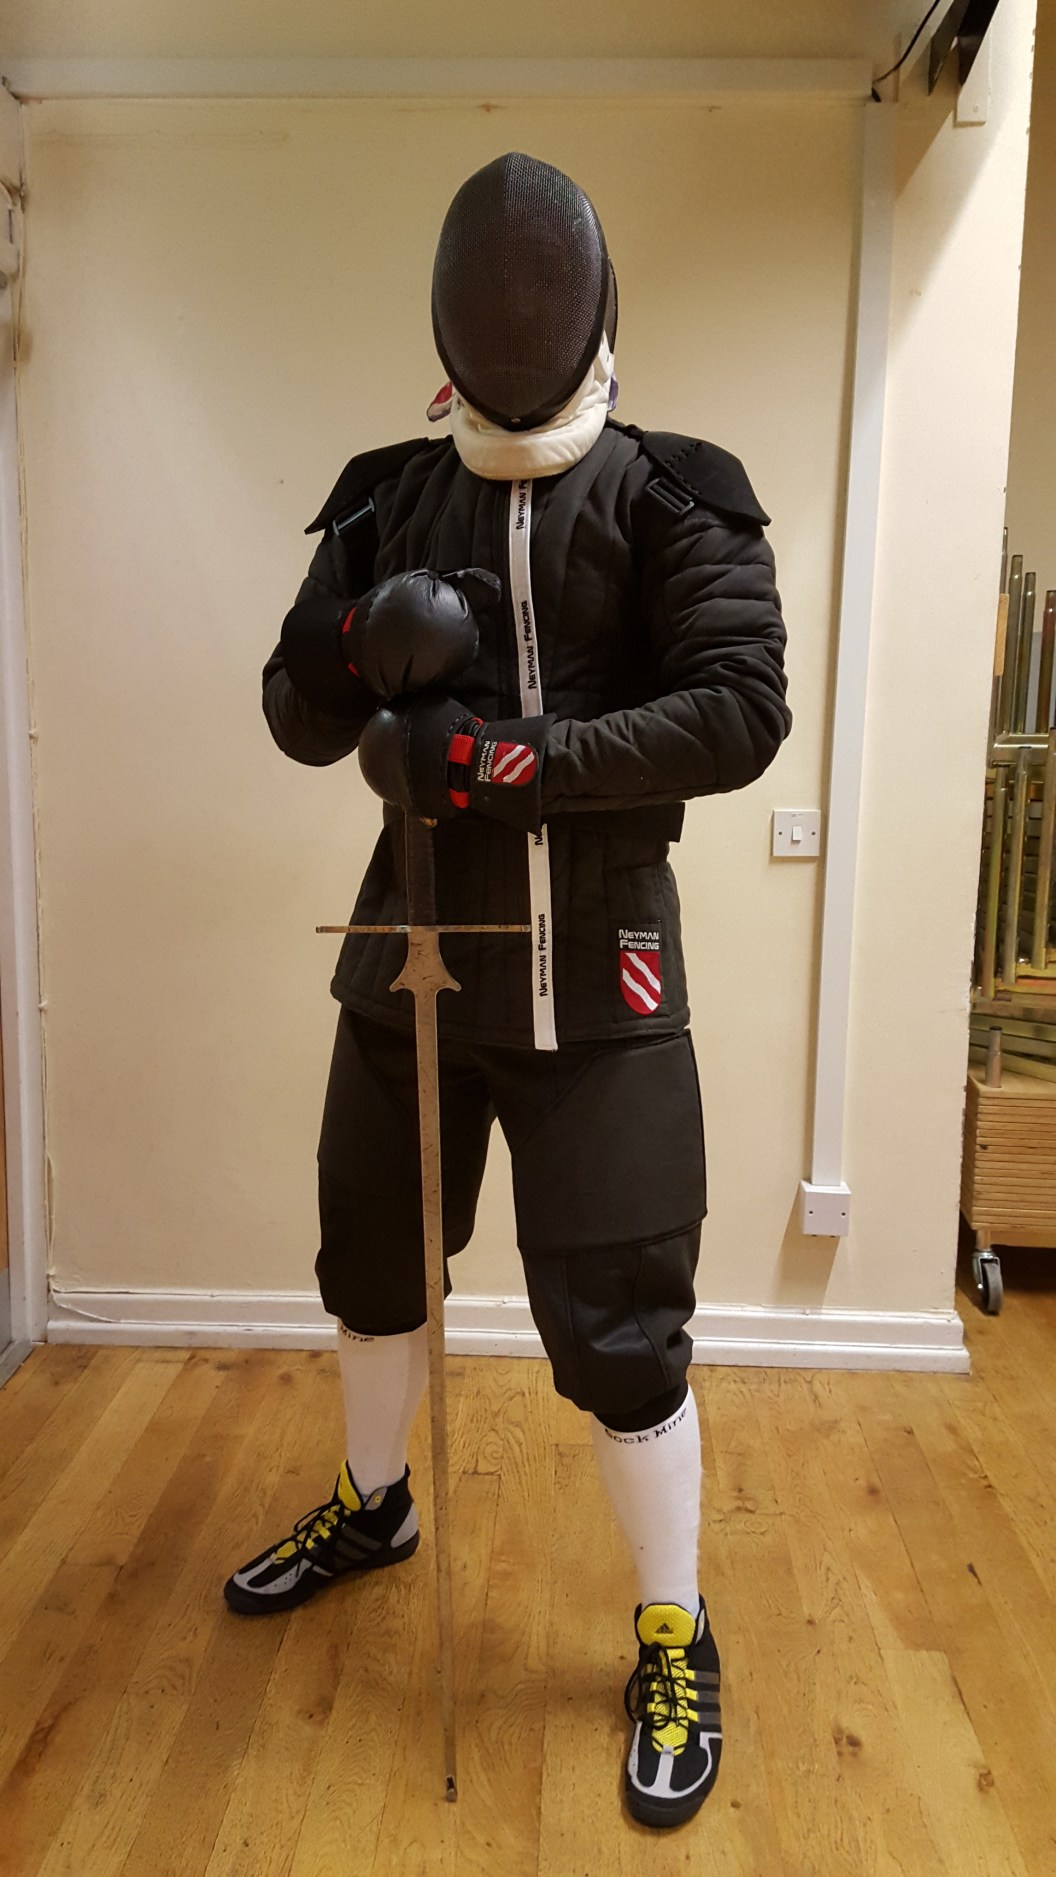 neyman fencing official supplier to the tla taunton longsword